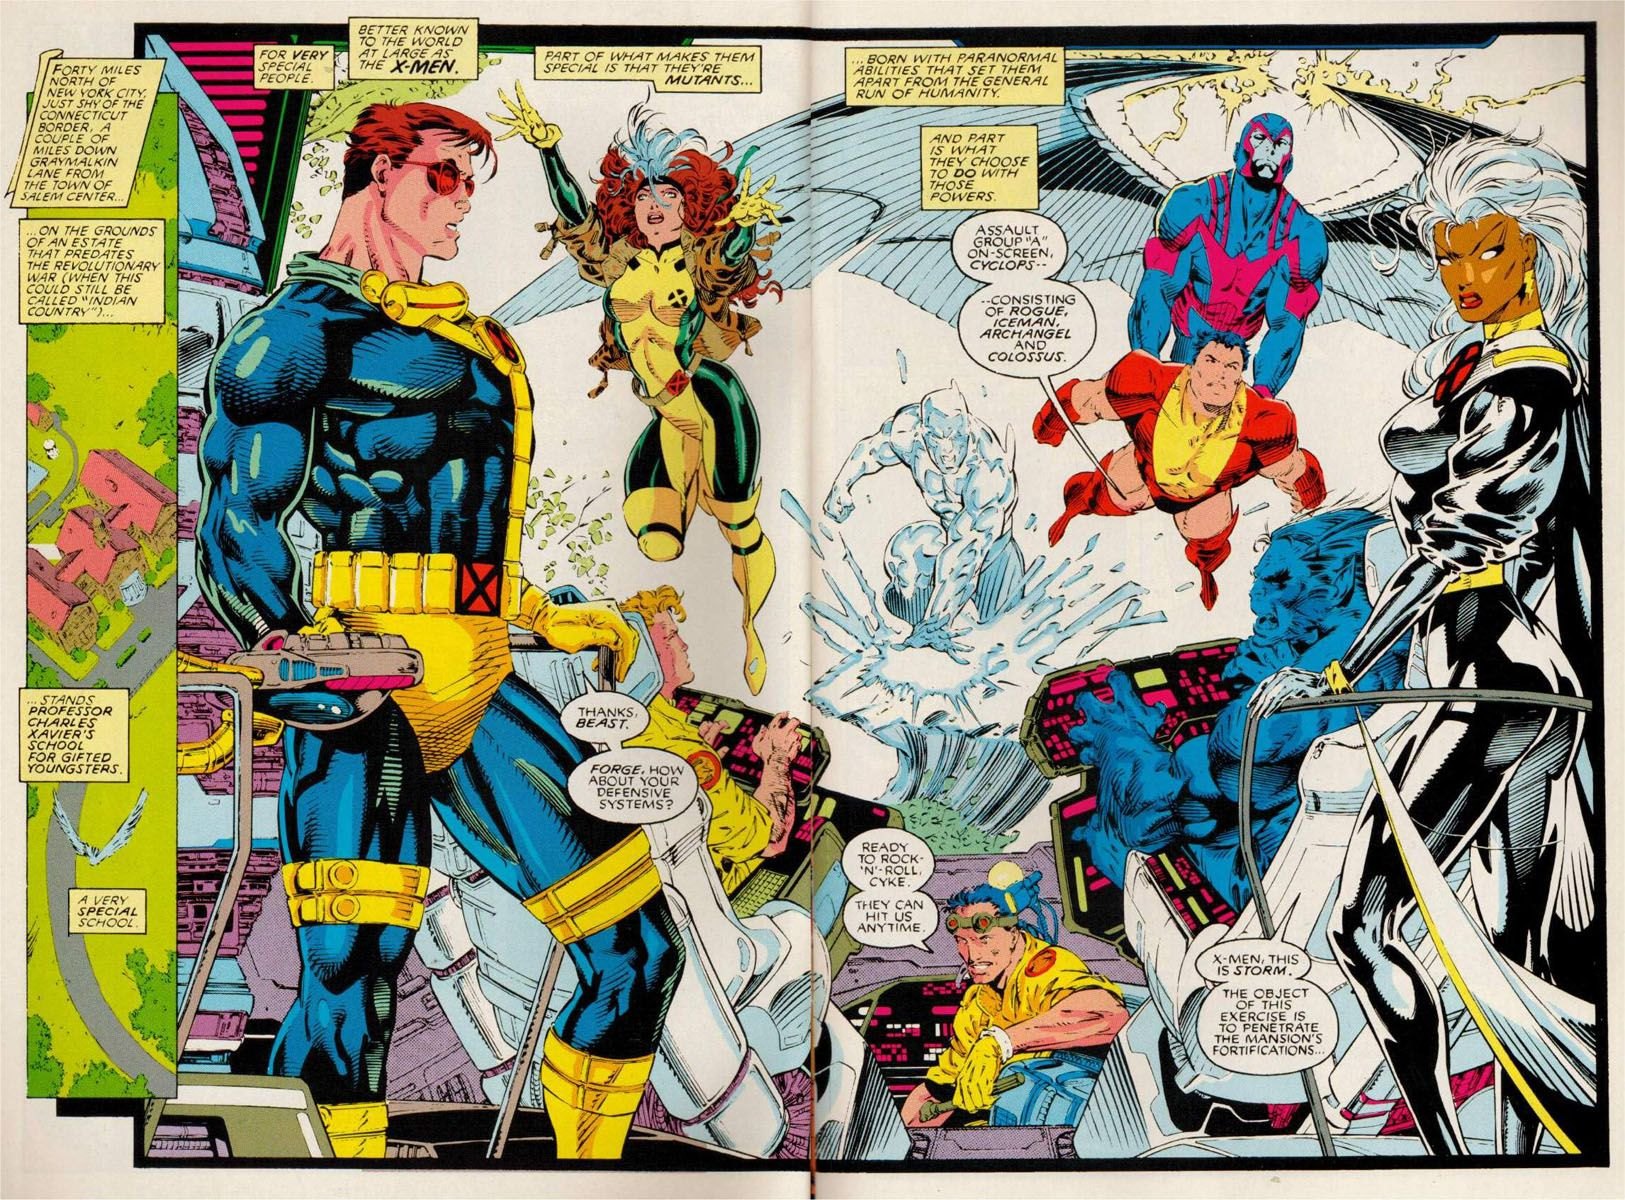 Pages 6 7 Of X Men 1 By Jim Lee Probably One Of My Favorite Issues Because Of When It Came Out How It S Written And Of Cours Jim Lee Art Comic Art Comics